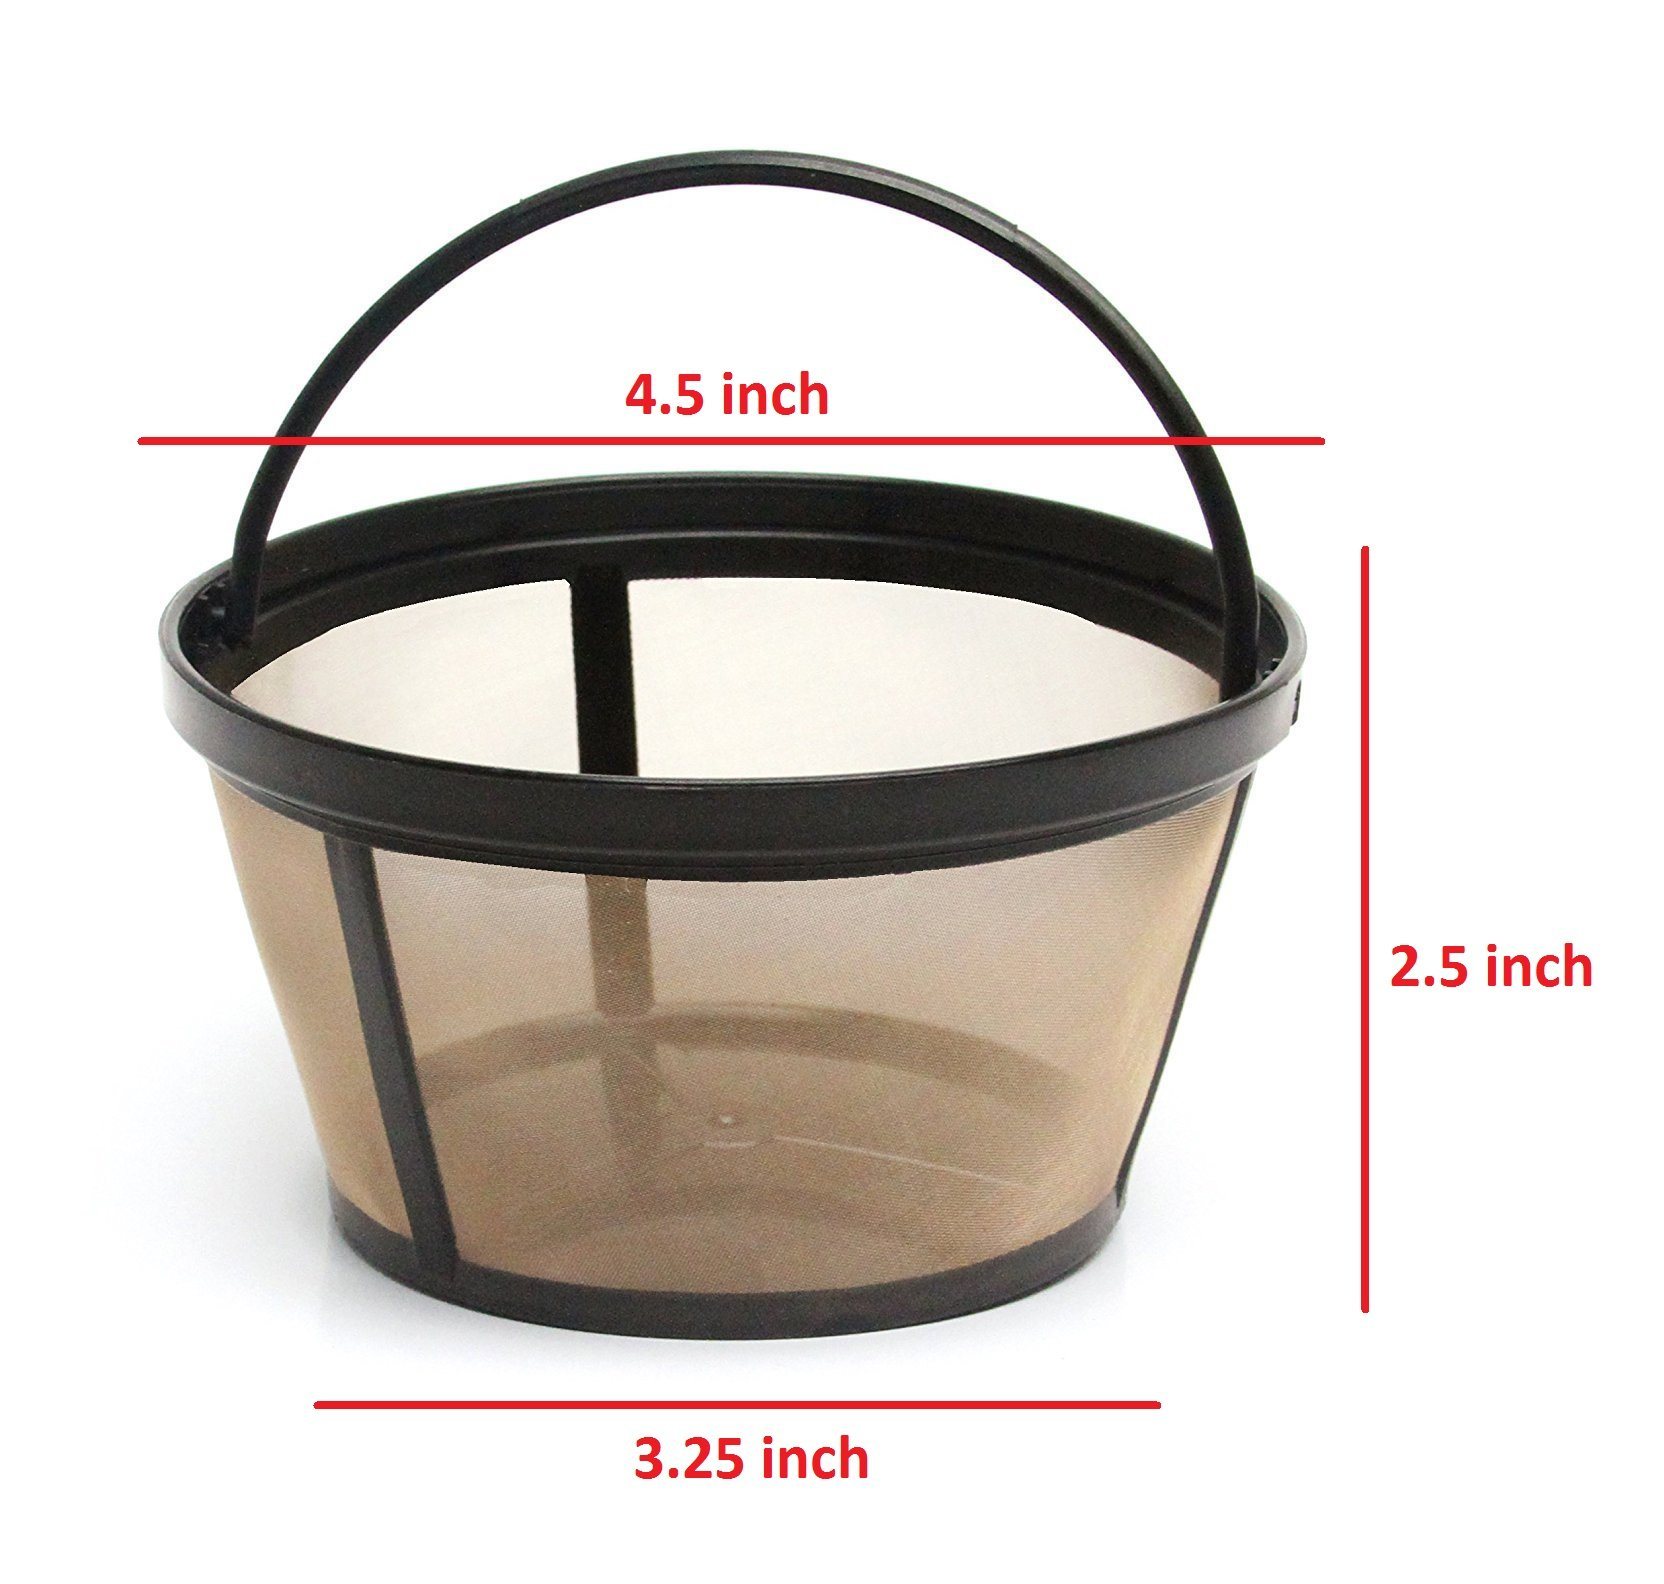 GOLDTONE Reusable 8-12 Cup Basket Coffee Filter fits Mr. Coffee Makers and Brewers, BPA Free by GoldTone (Image #3)